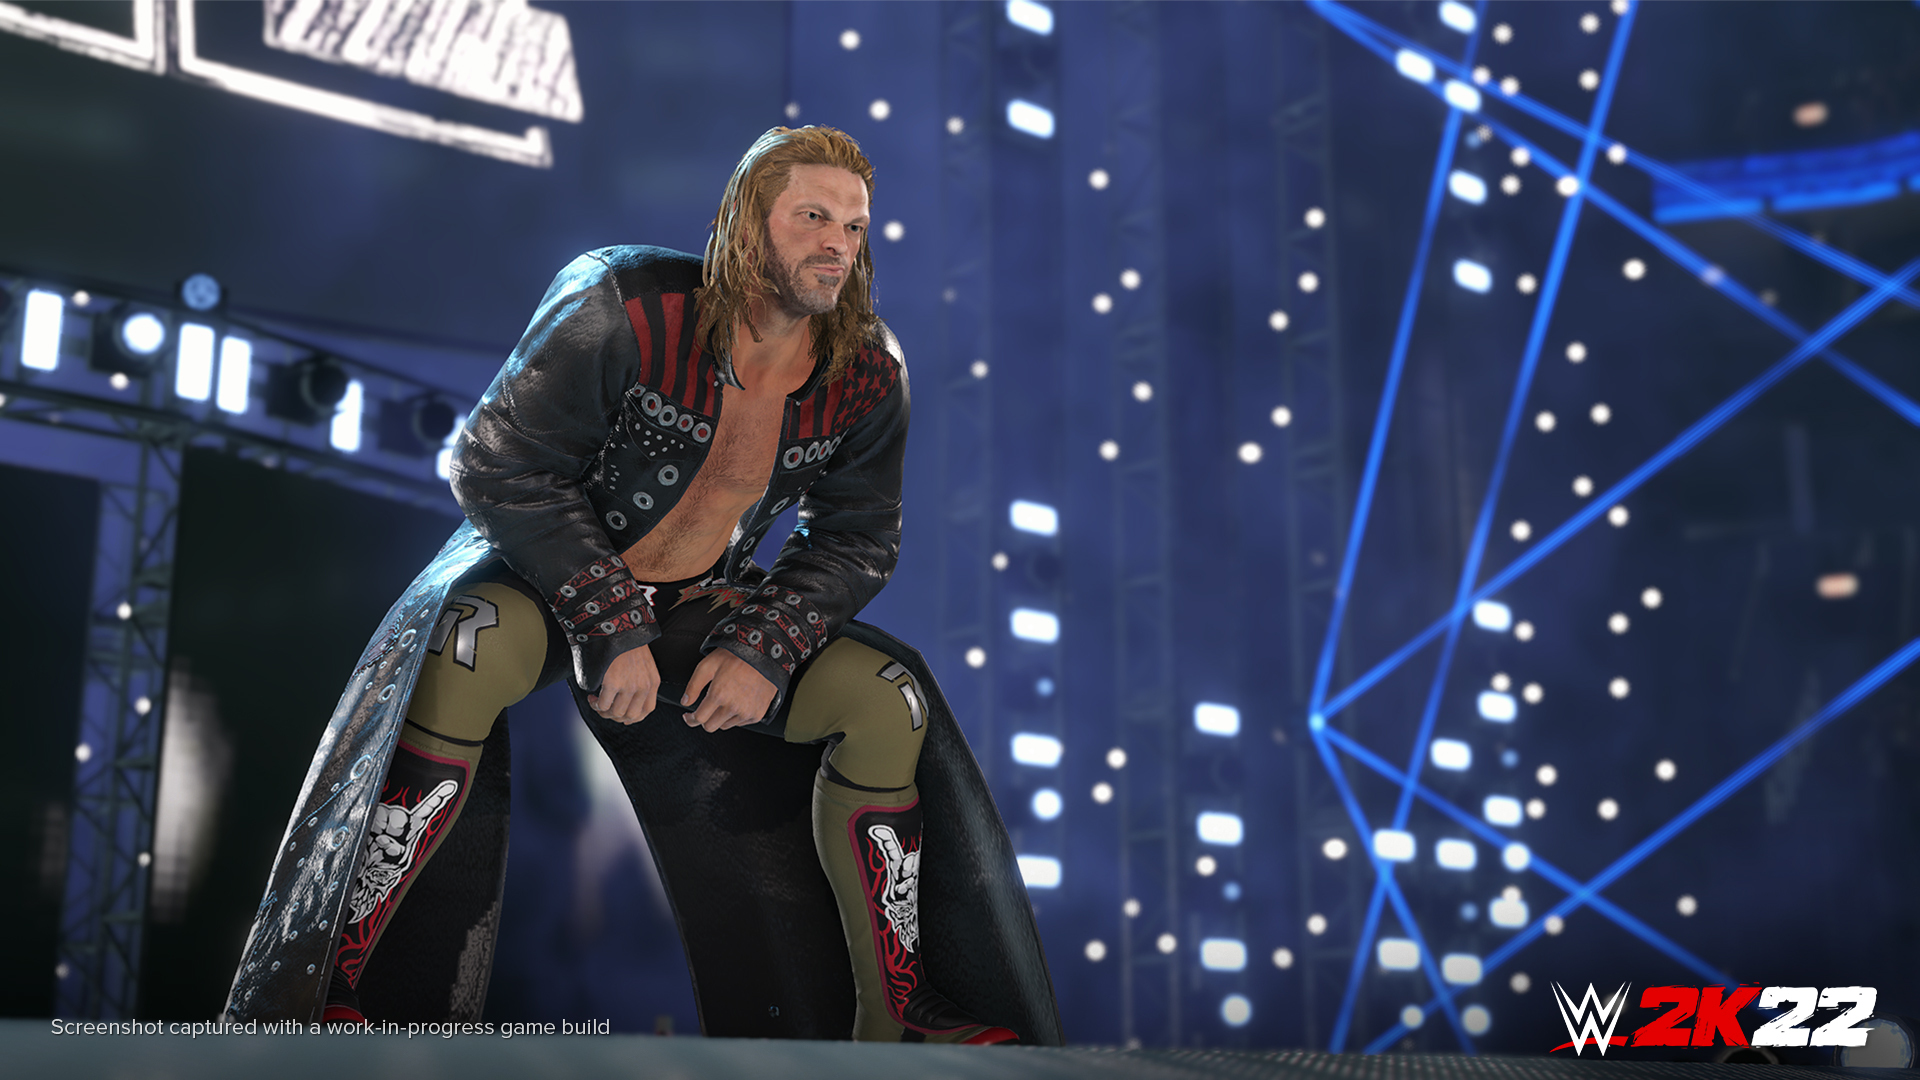 """HHW Gaming: 2K Delays 'WWE 2K22' Till March, Promises The Game """"Will Hit Different"""""""